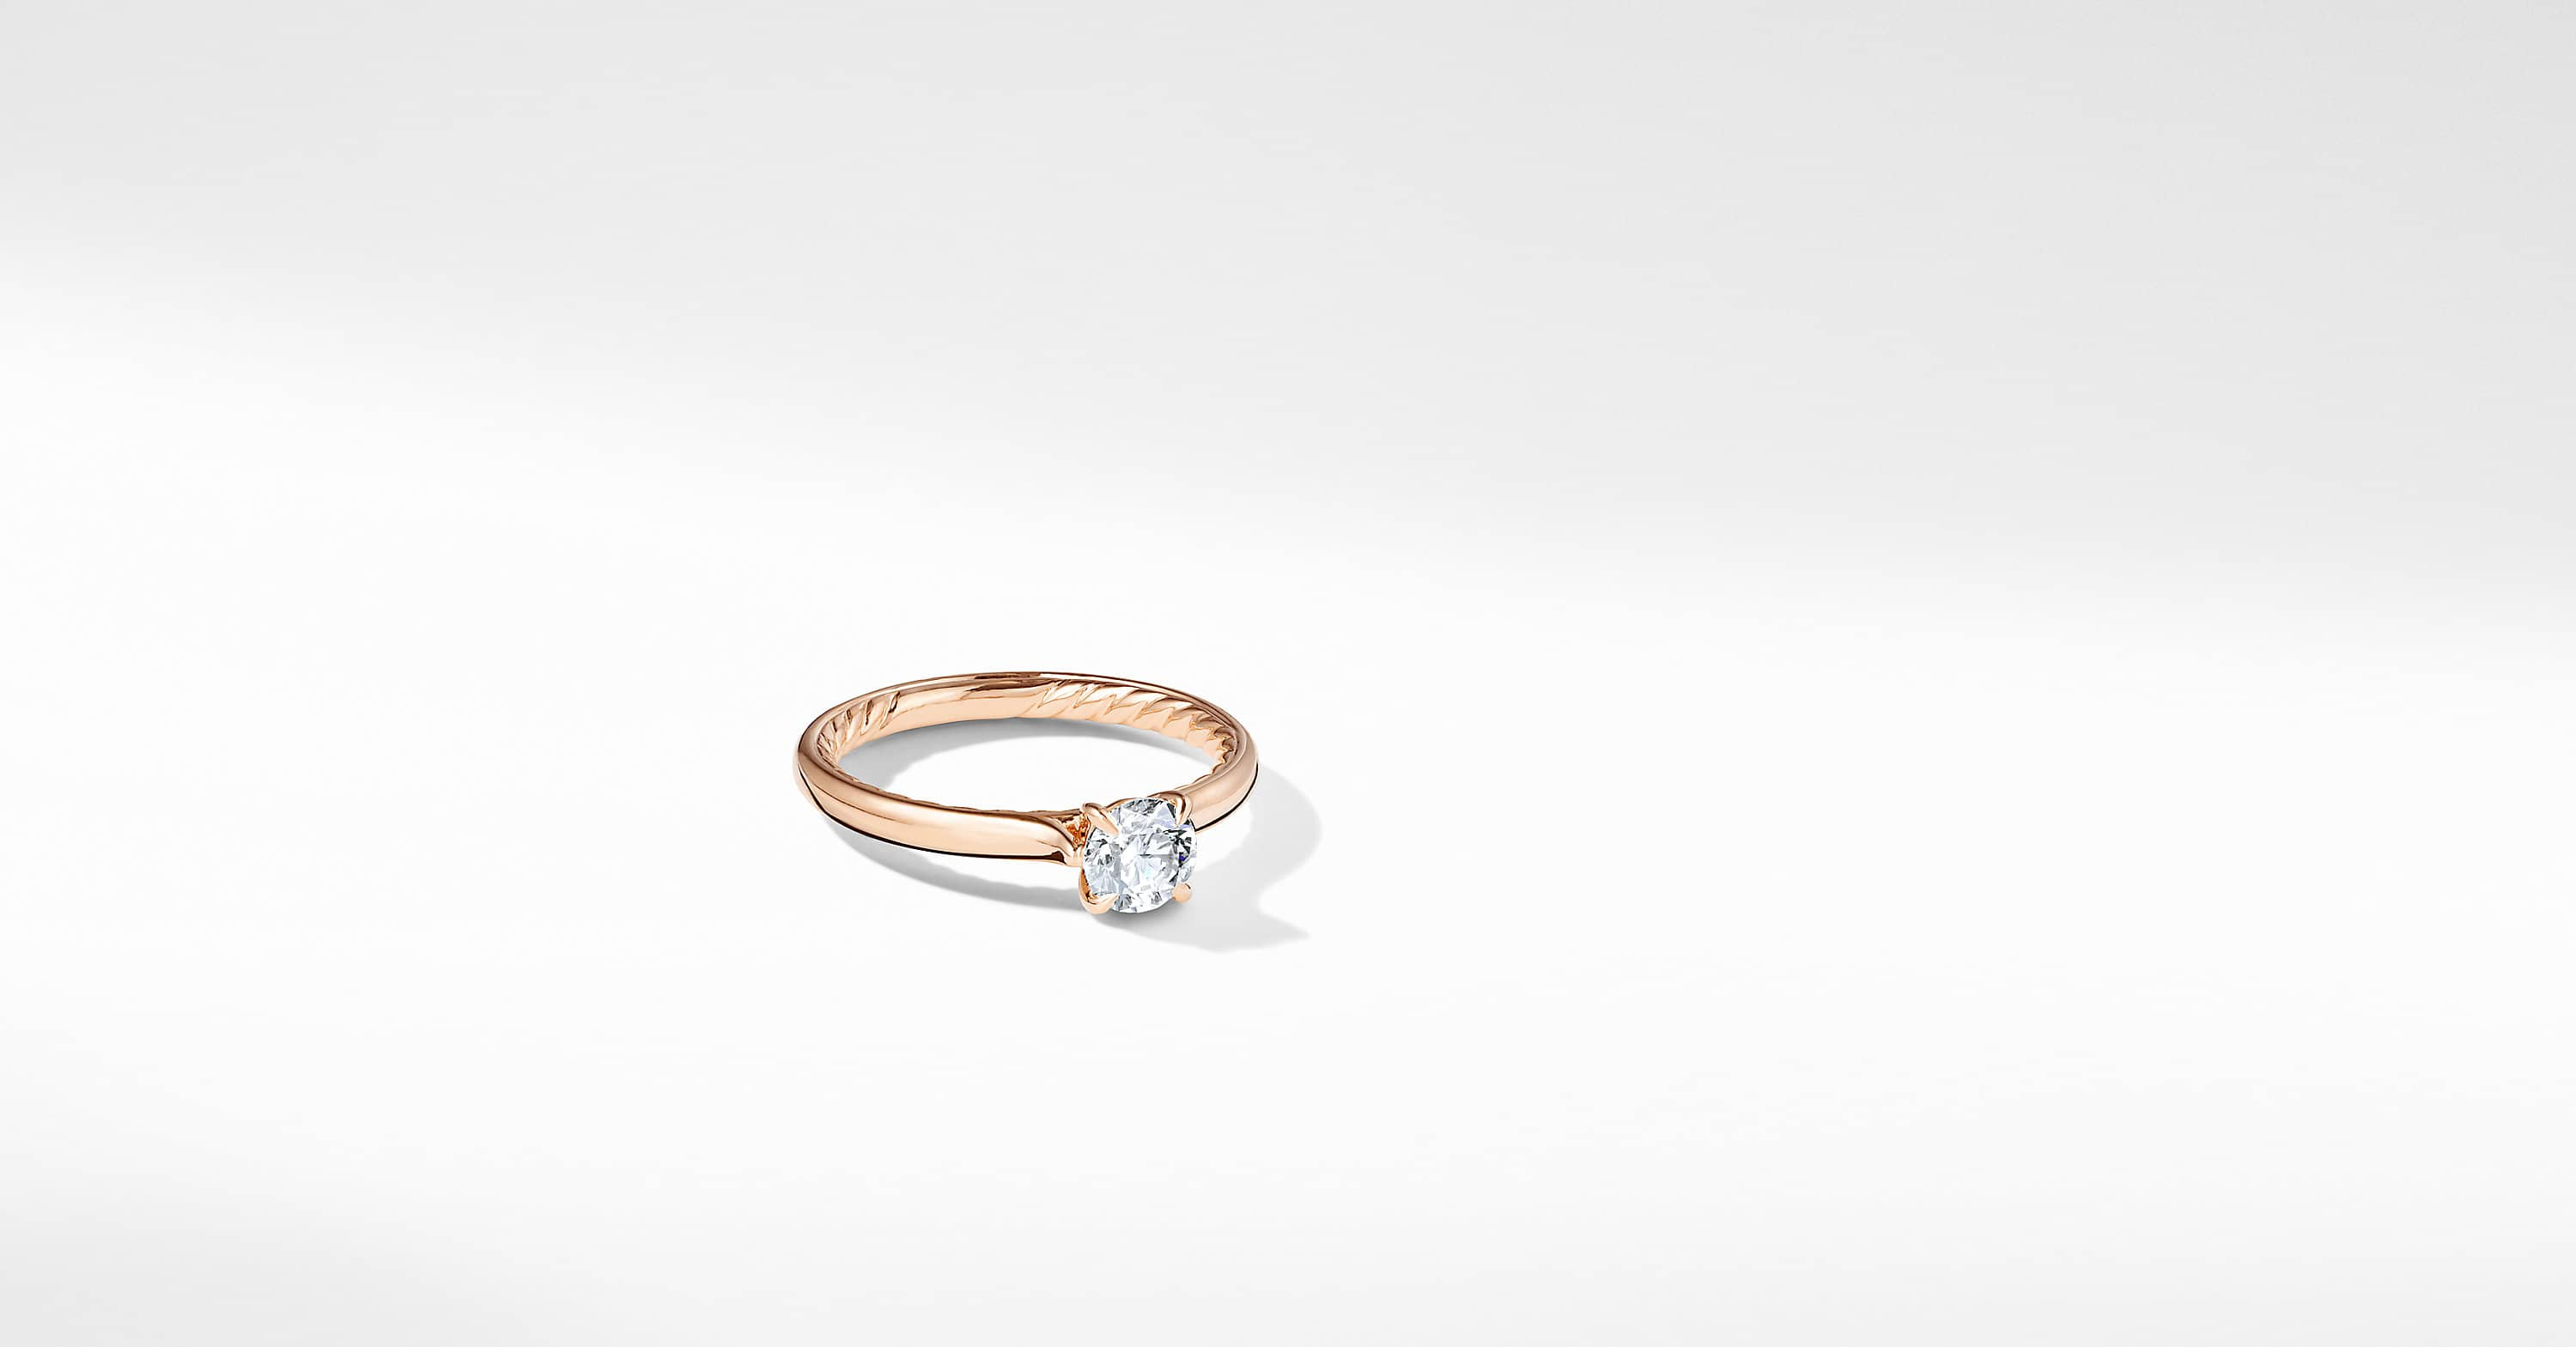 DY Eden Petite Solitaire Engagement Ring in 18K Rose Gold, Round